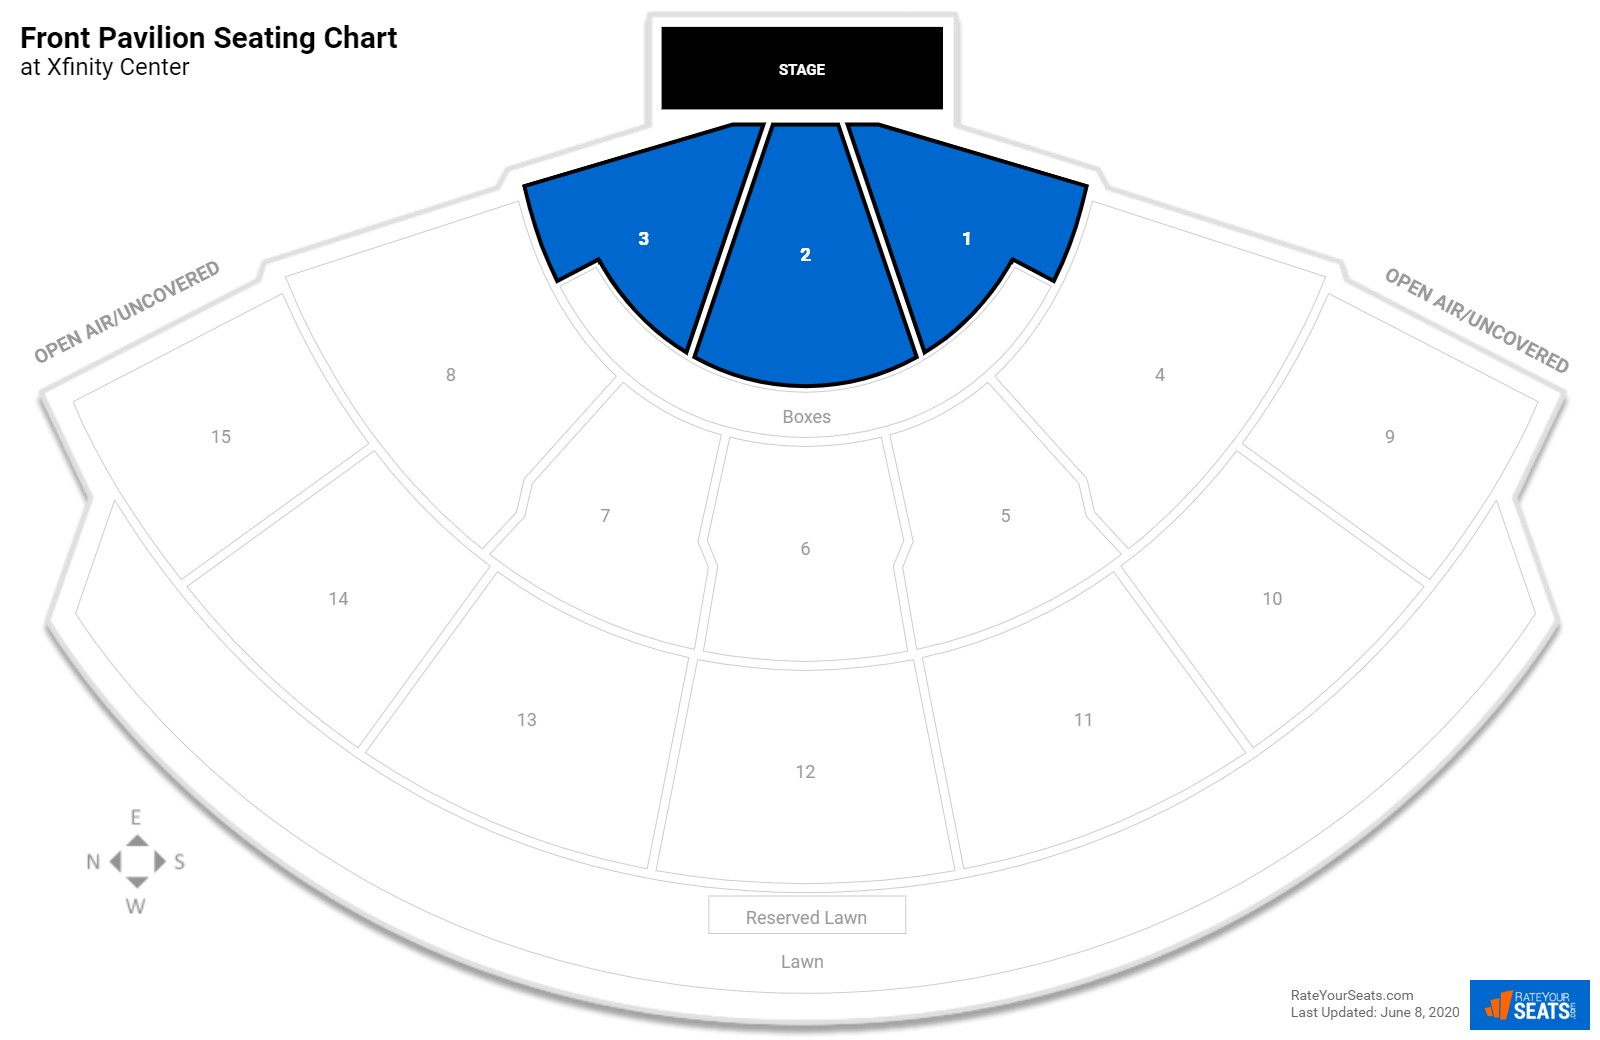 Xfinity Center Front Pavilion seating chart